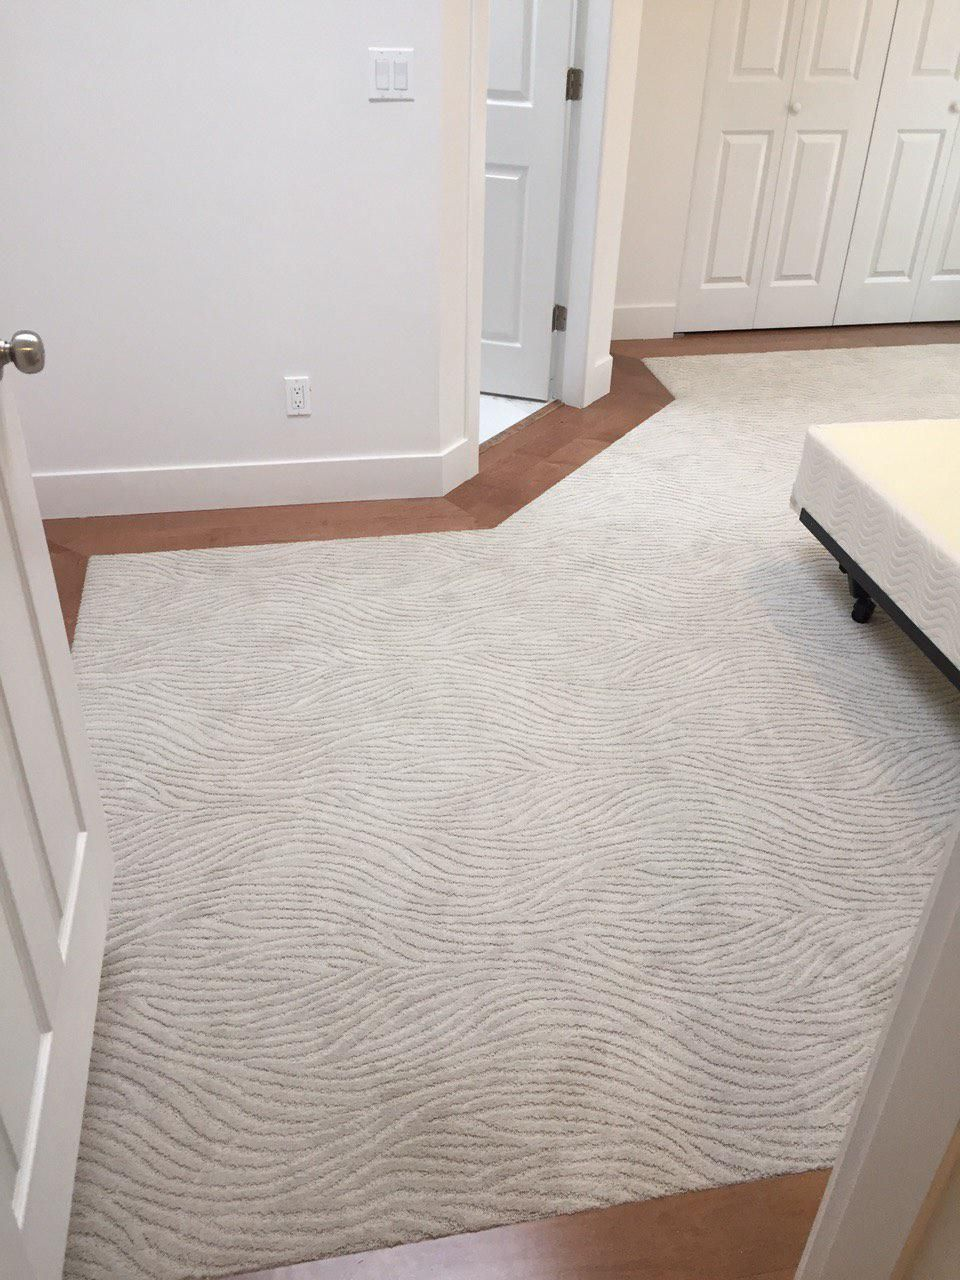 Mohawk Dramatic Flair in Hushed Beige carpet, maple hardwood floor border. Master bedroom renovation.